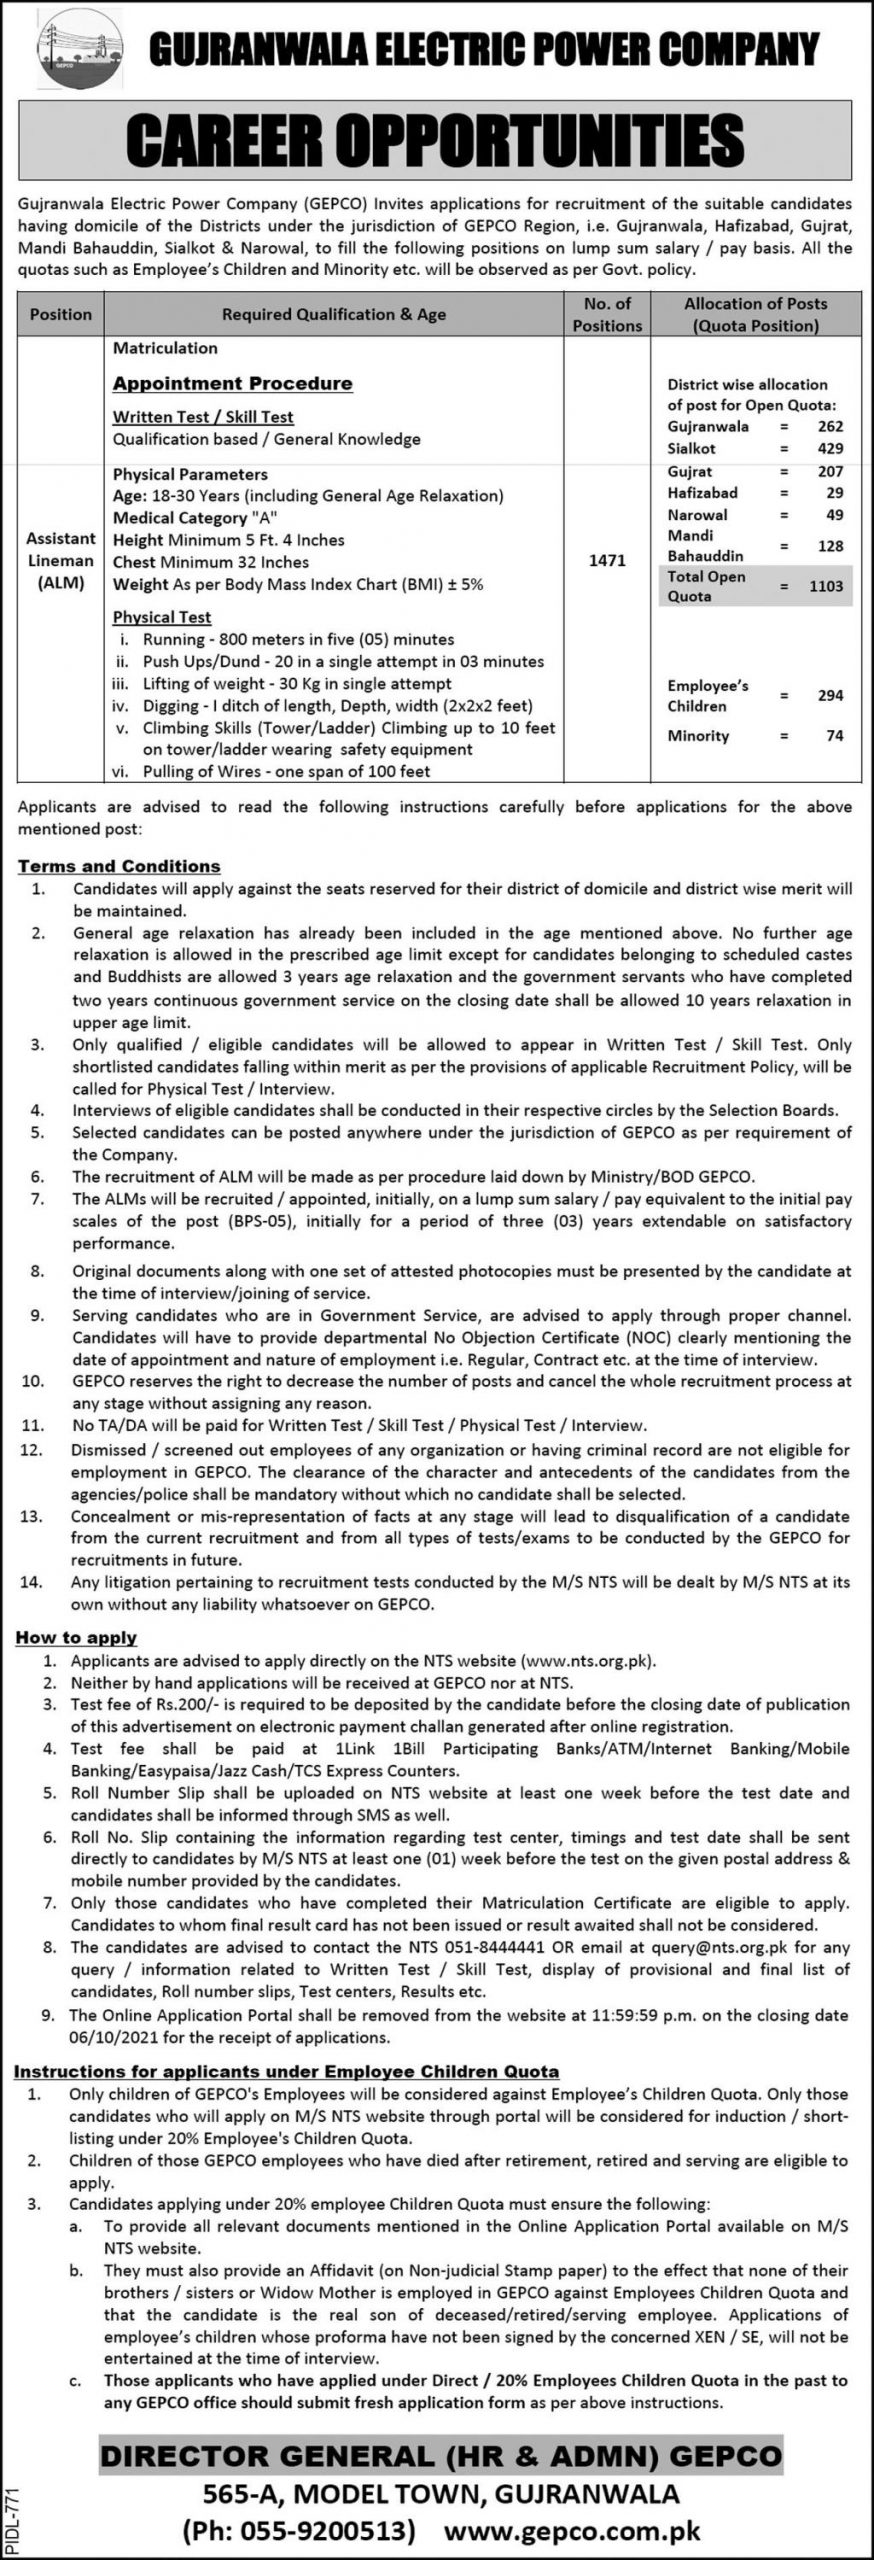 Gujranwala Electric Power Company GEPCO Jobs September 2021